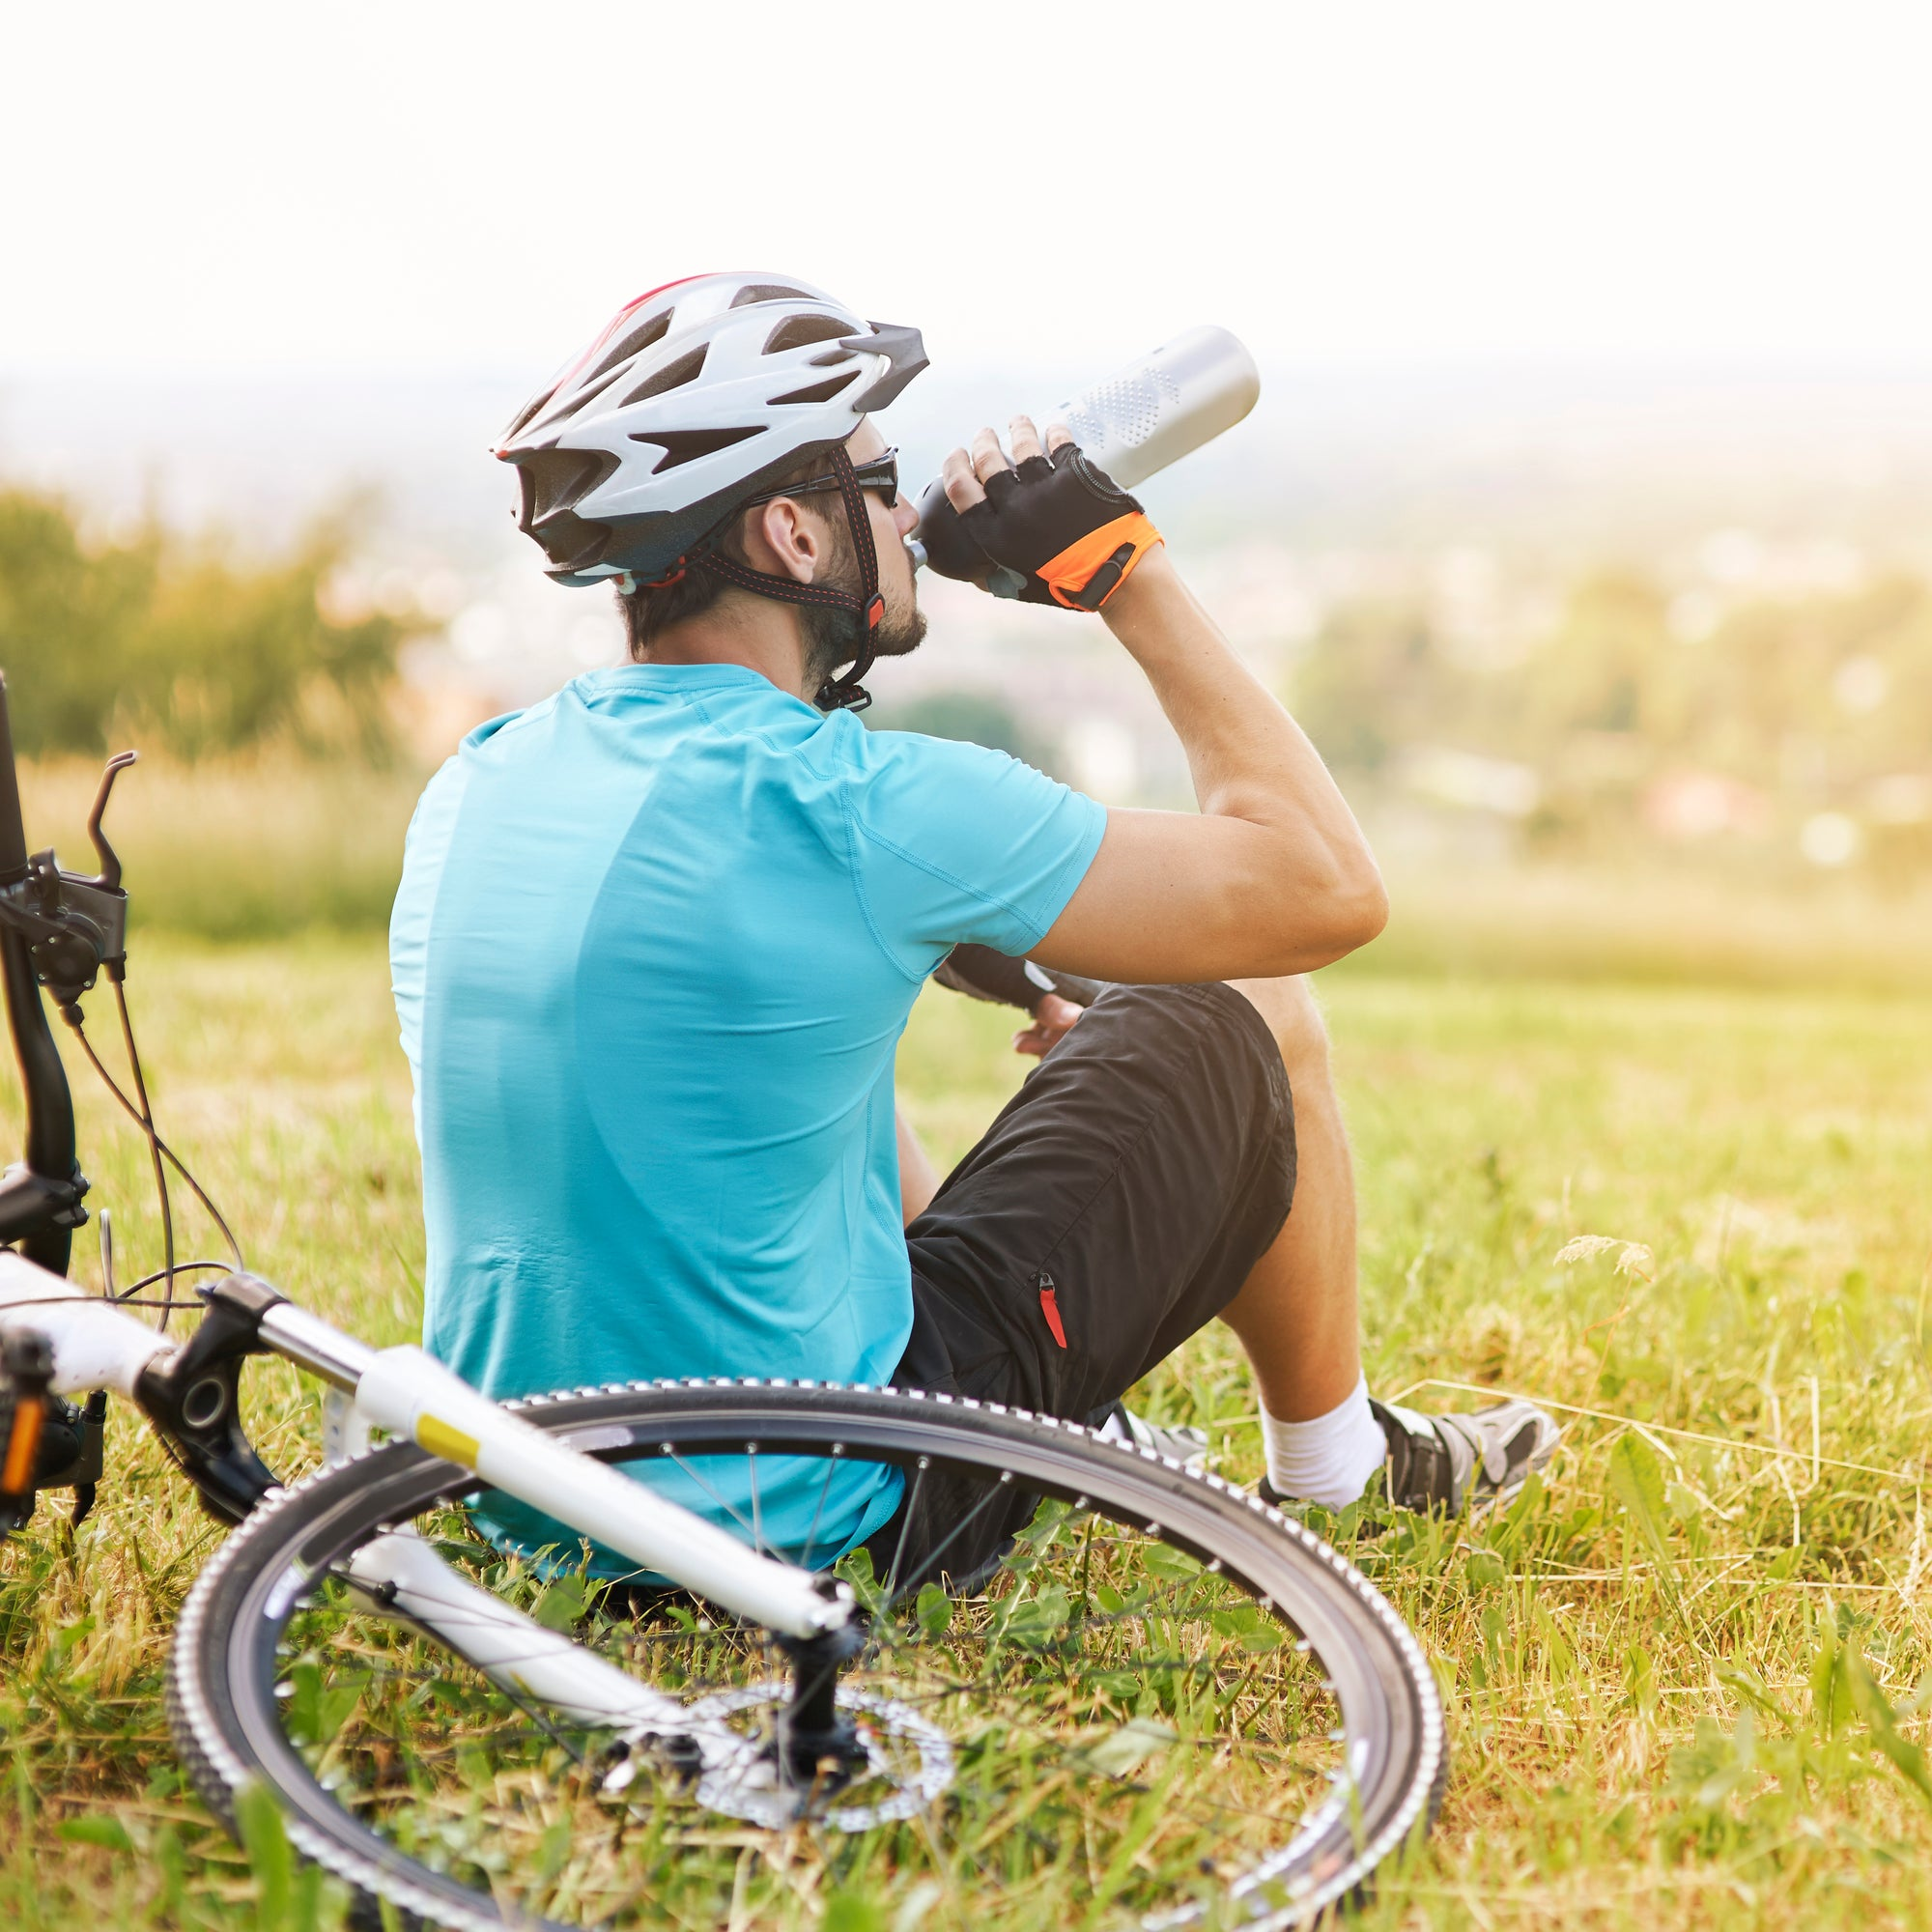 7 Things You Should Do After Biking